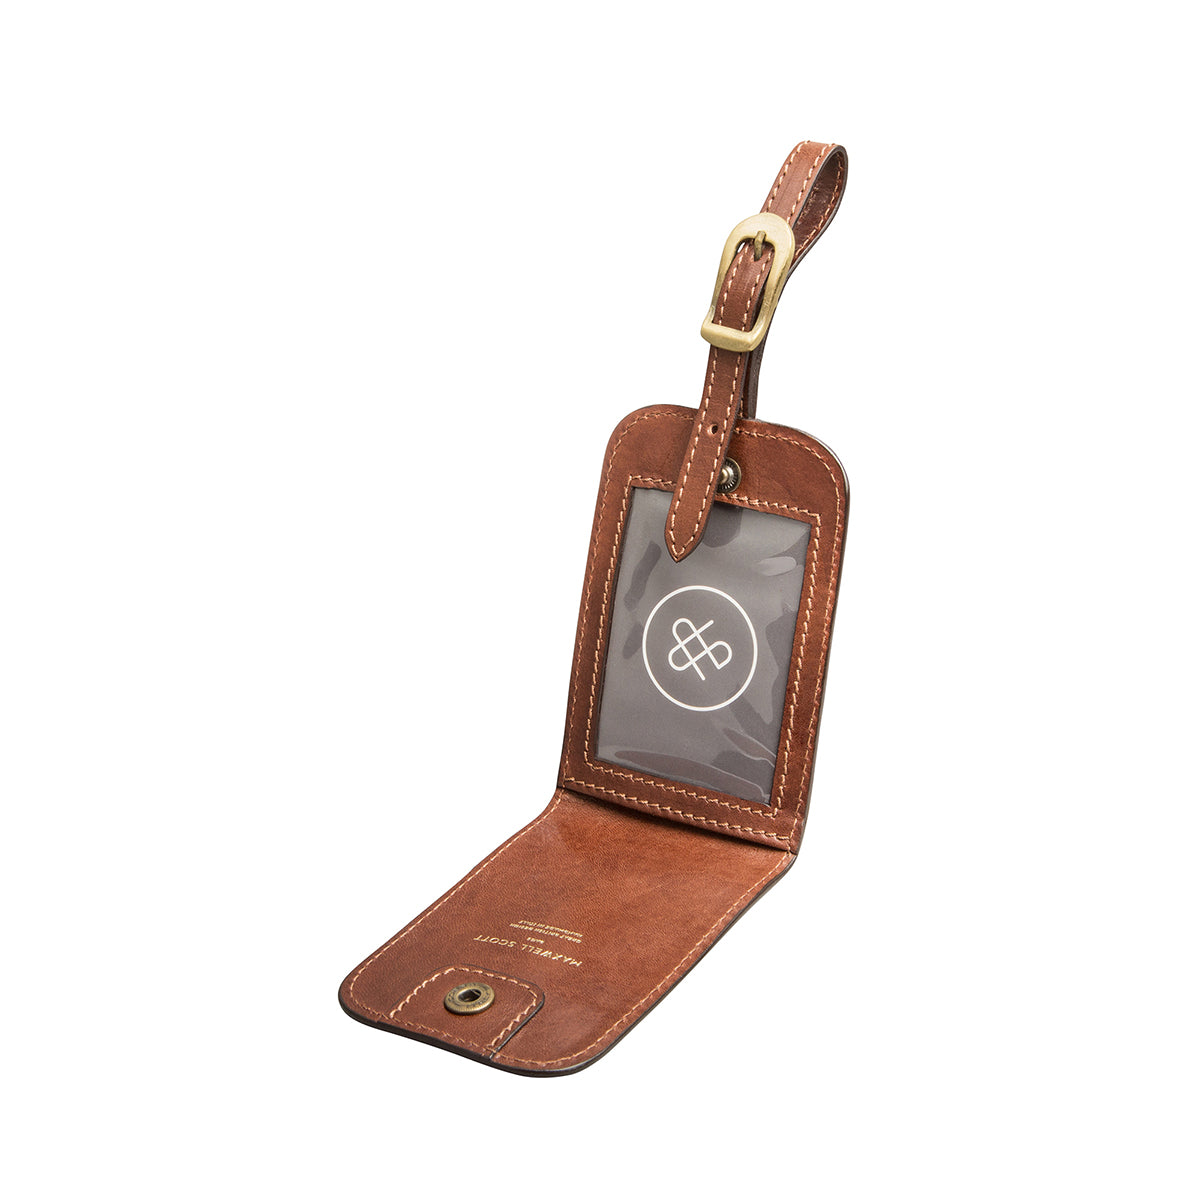 Image 2 of the 'Ledro' Leather Luggage Tag